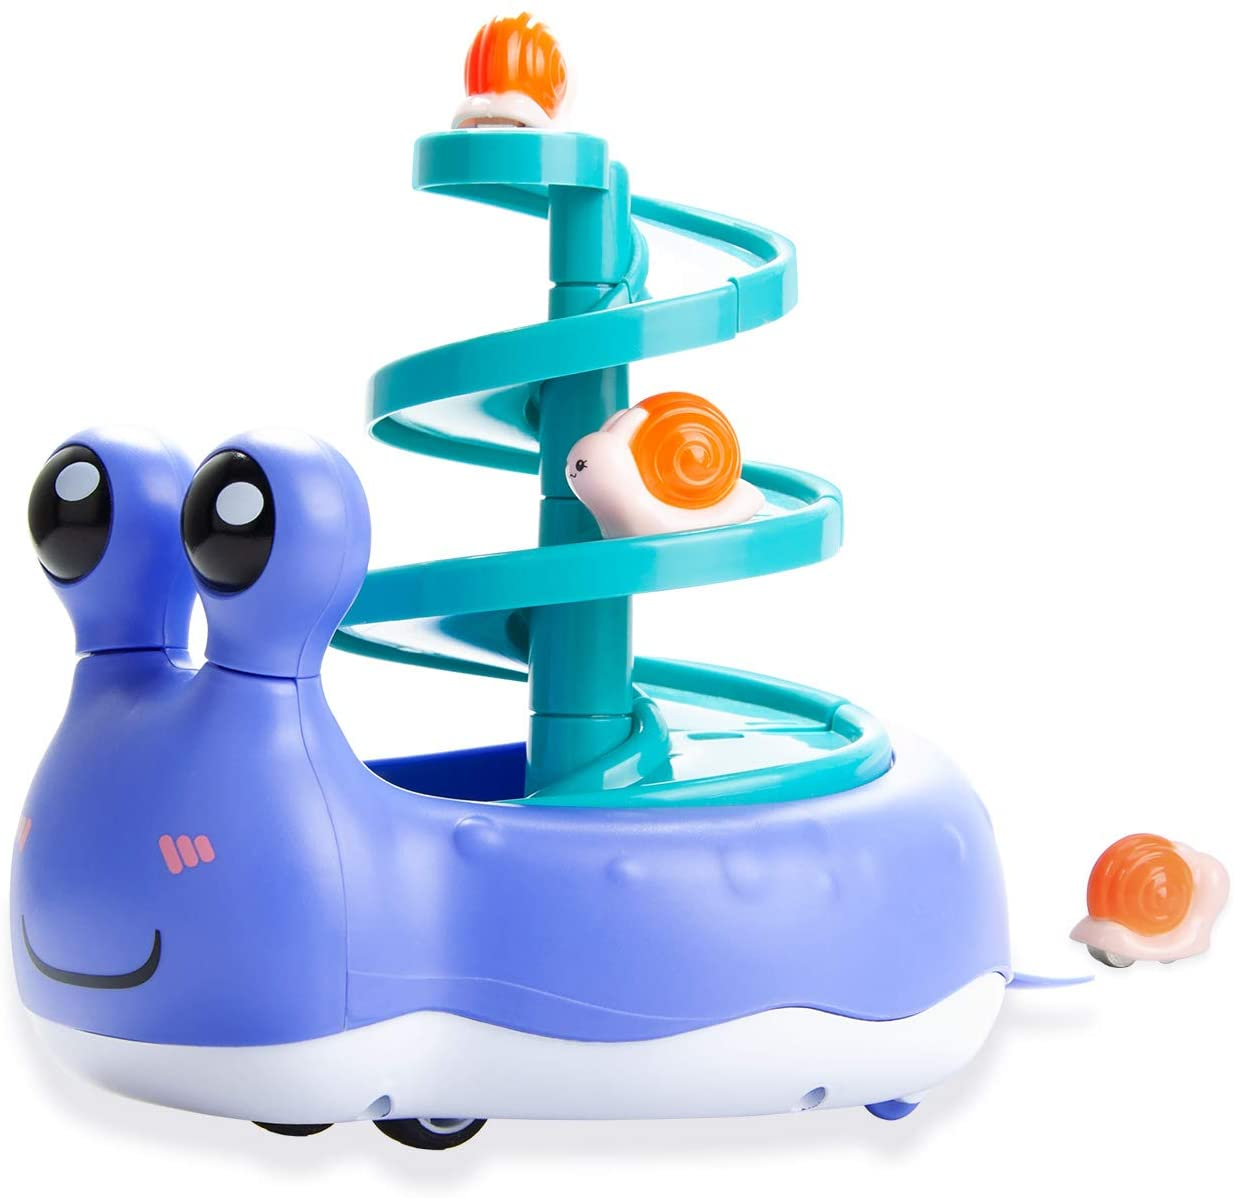 Termichy Ramp Racers, Friction Powered Cars Vehicle Playset with 3 Mini Snail Cars for Toddler Kids Boys and Girls Gift, Purple